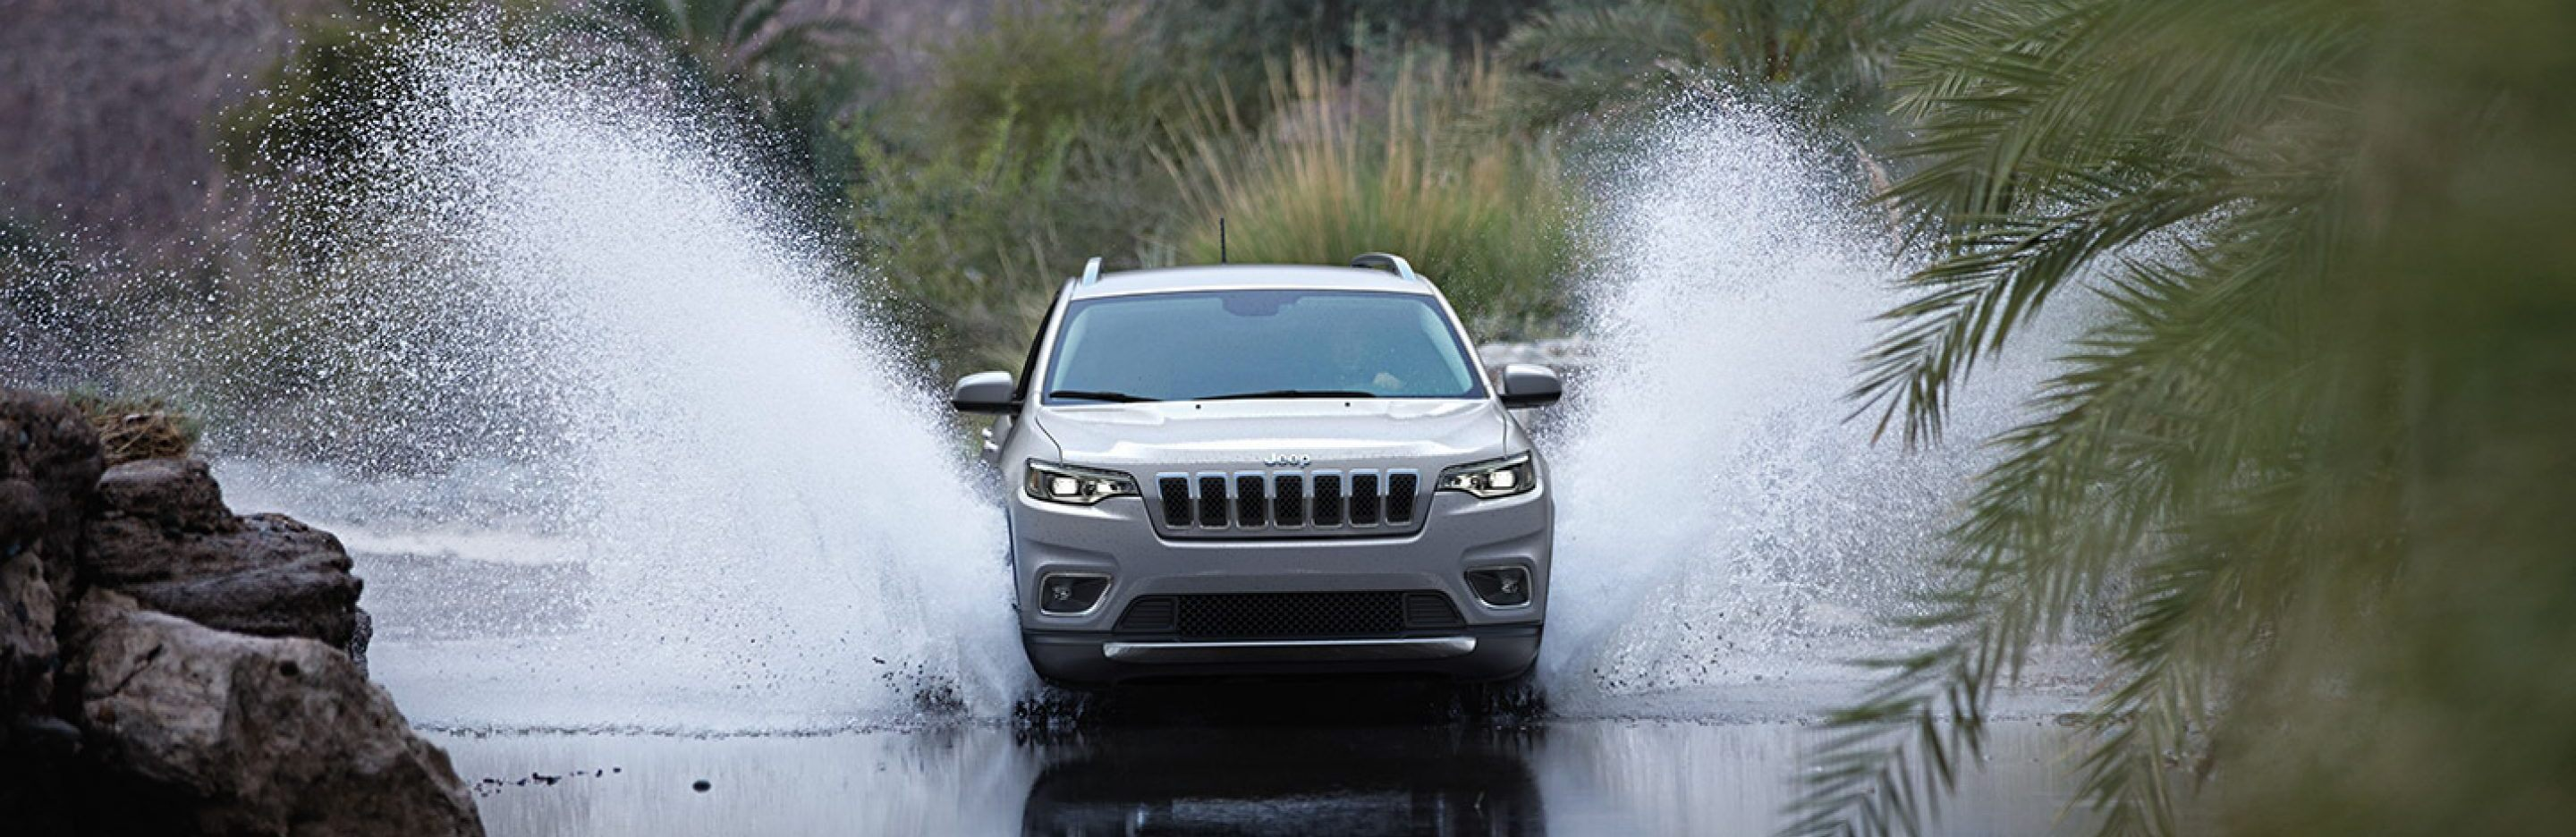 2020 Jeep Cherokee Leasing in Cookeville, TN